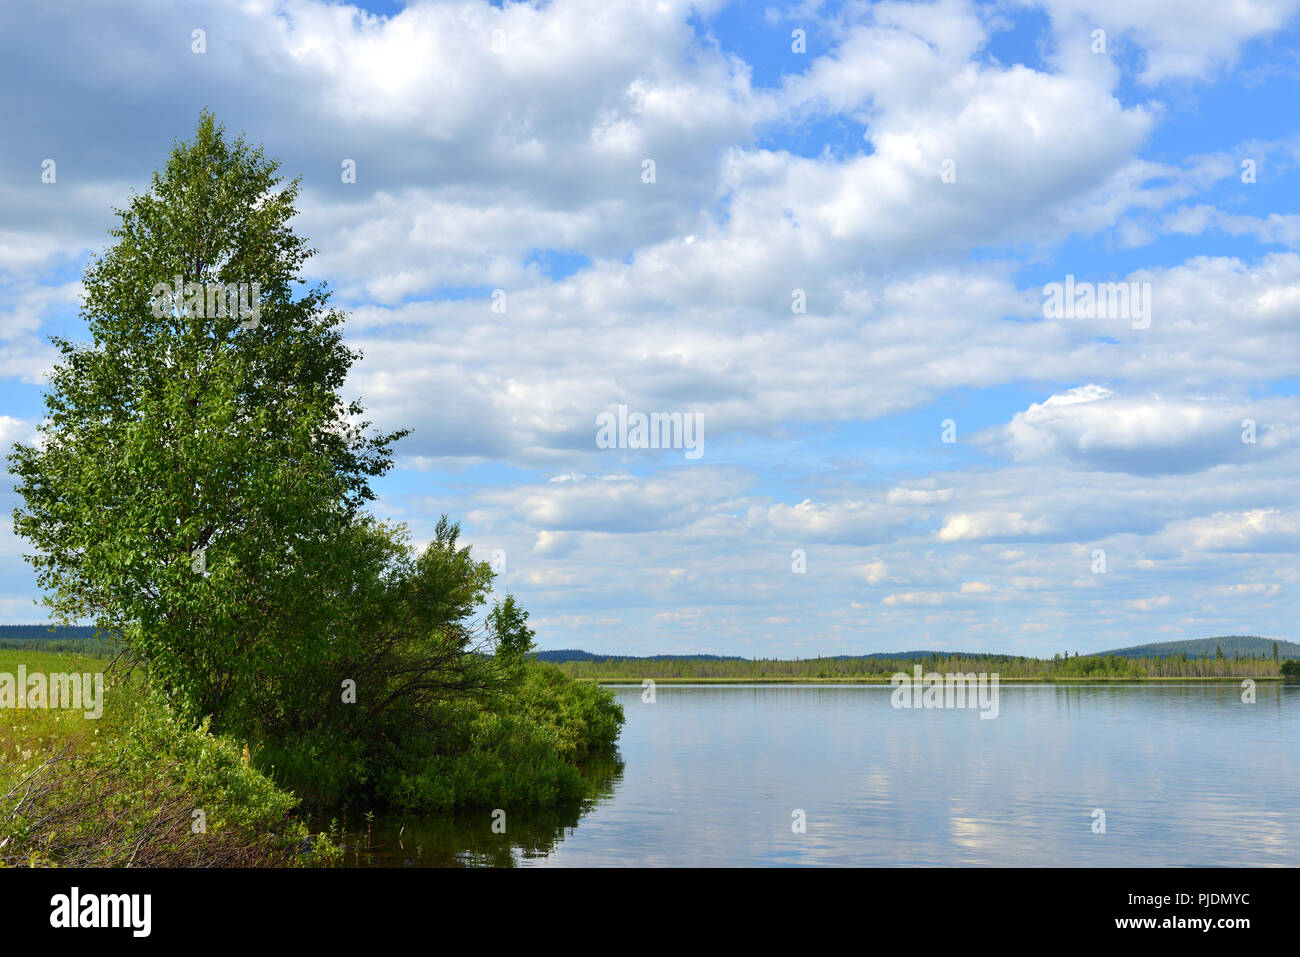 Summer landscape. Picturesque lake with with bush on shore in Finnish Lapland - Stock Image